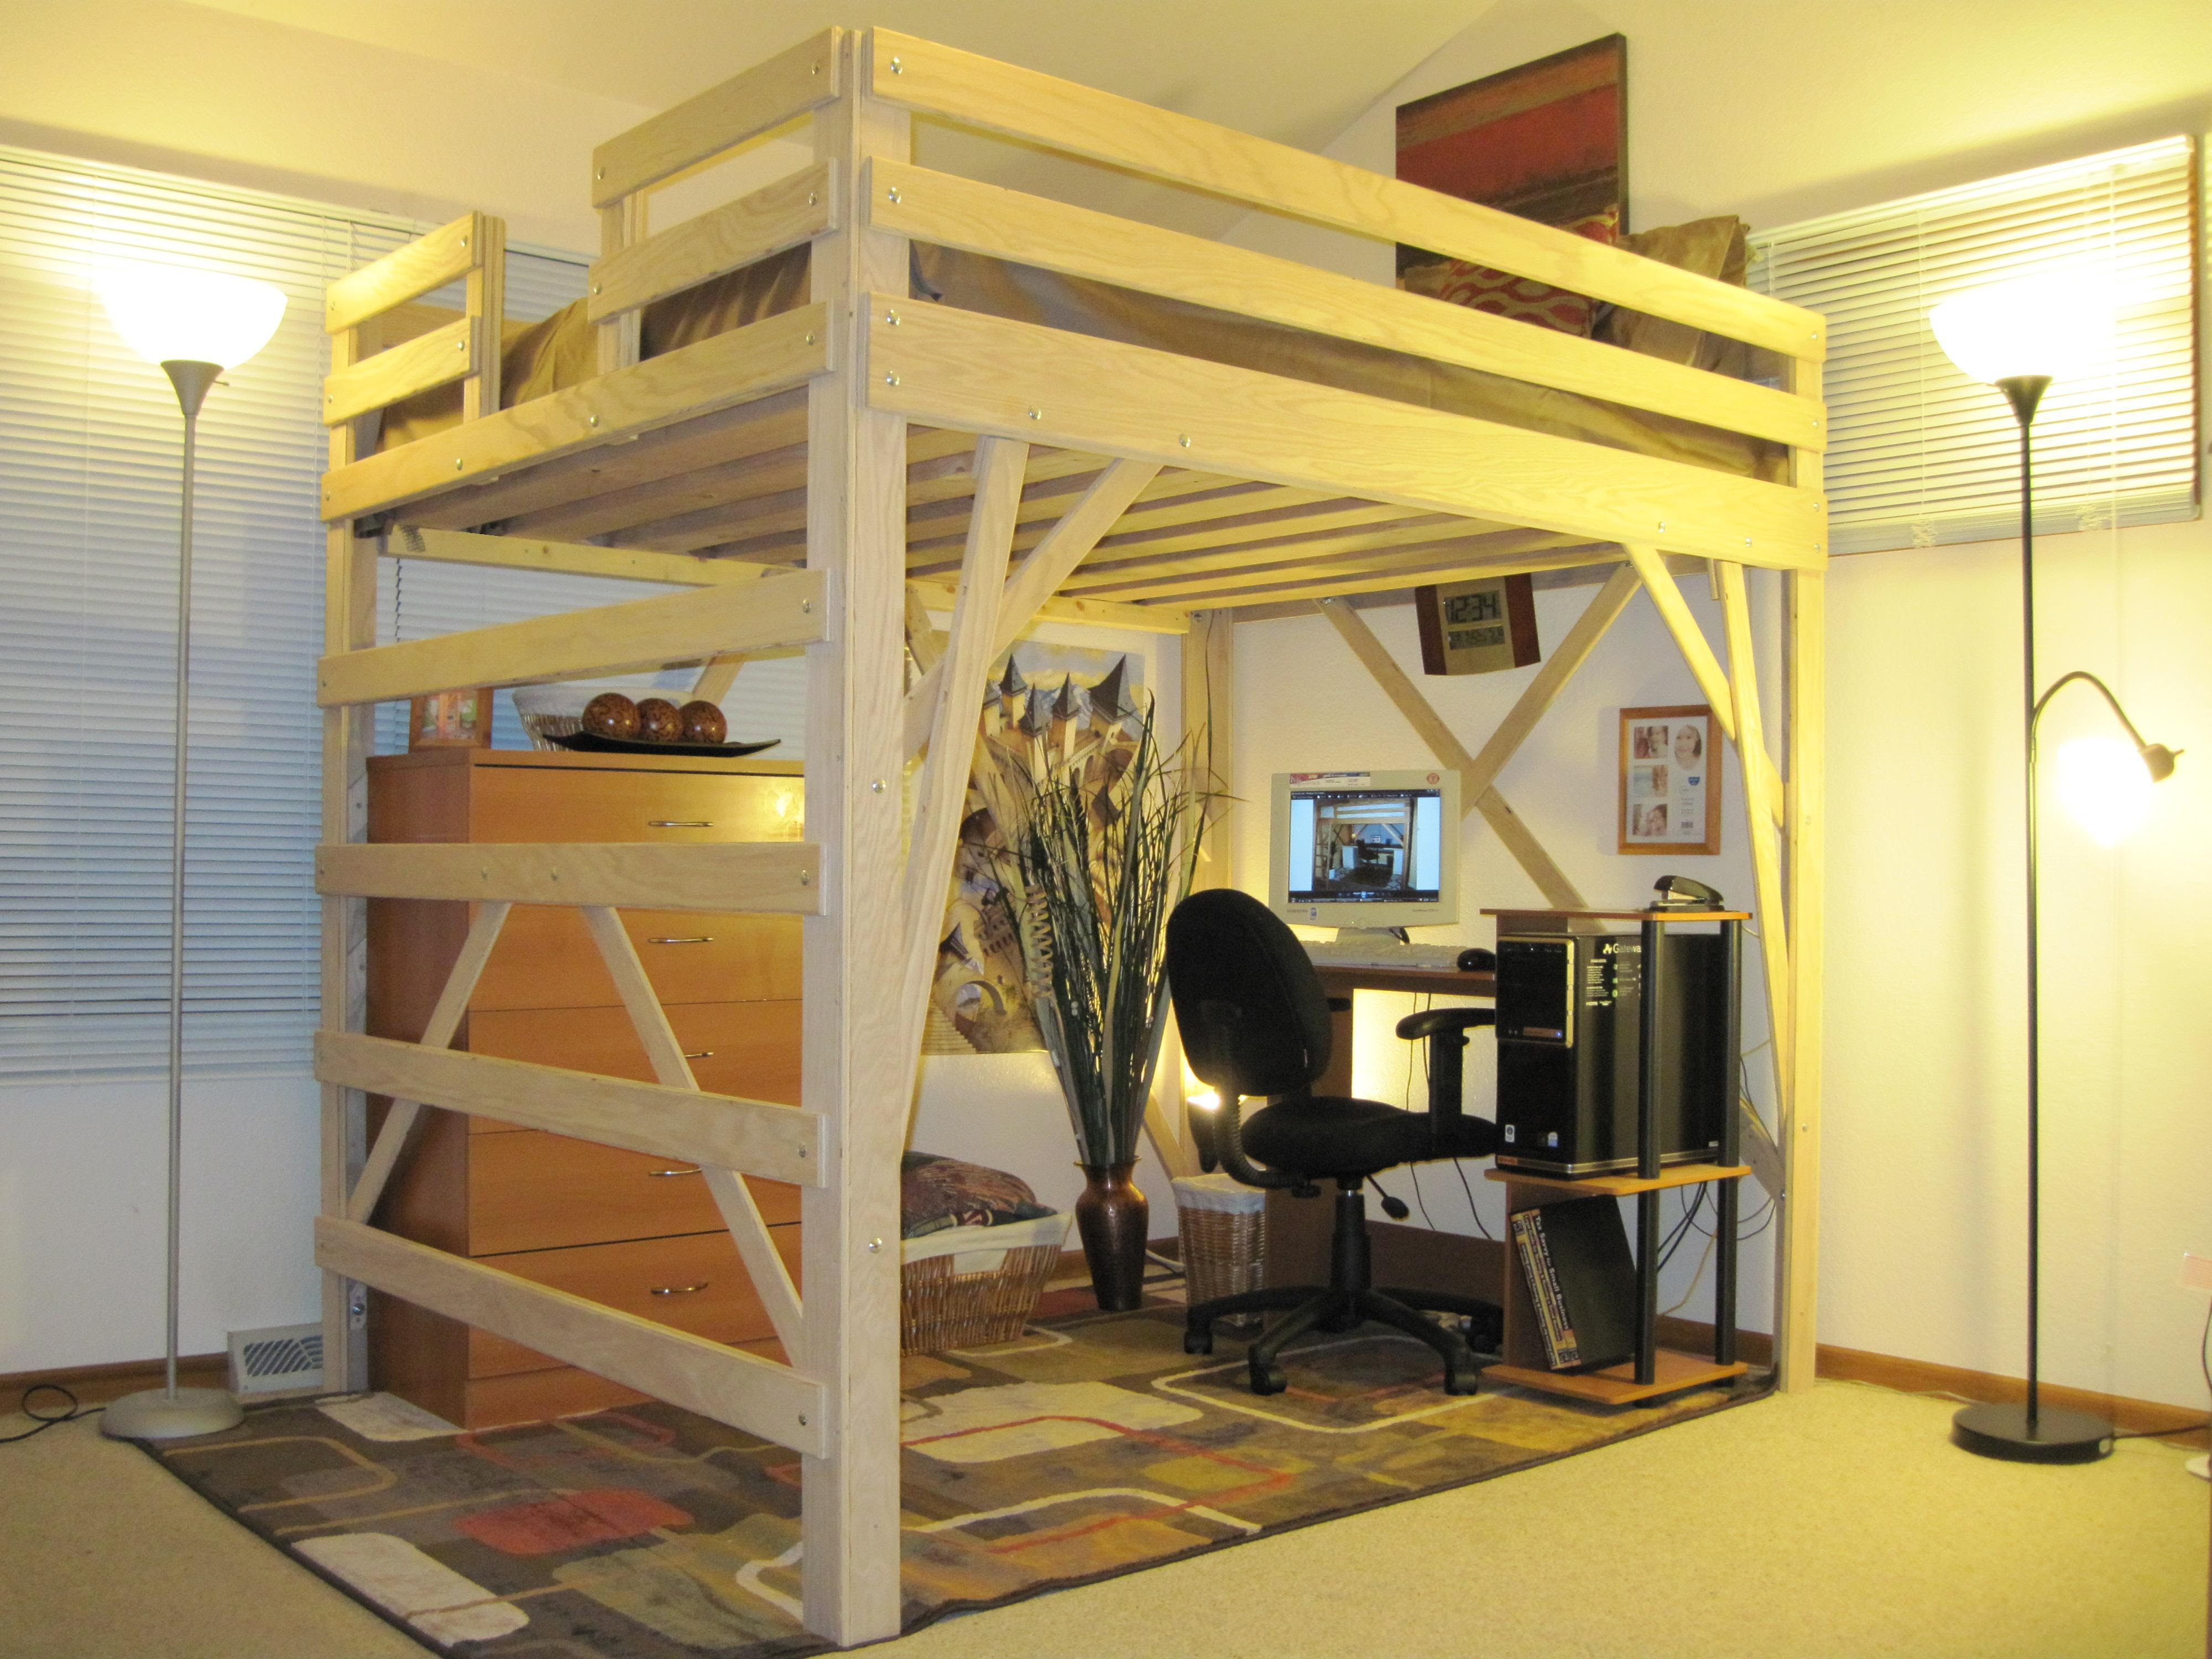 Woodworking Ideas For Beginner Loft Bed Plans Quilting Frame